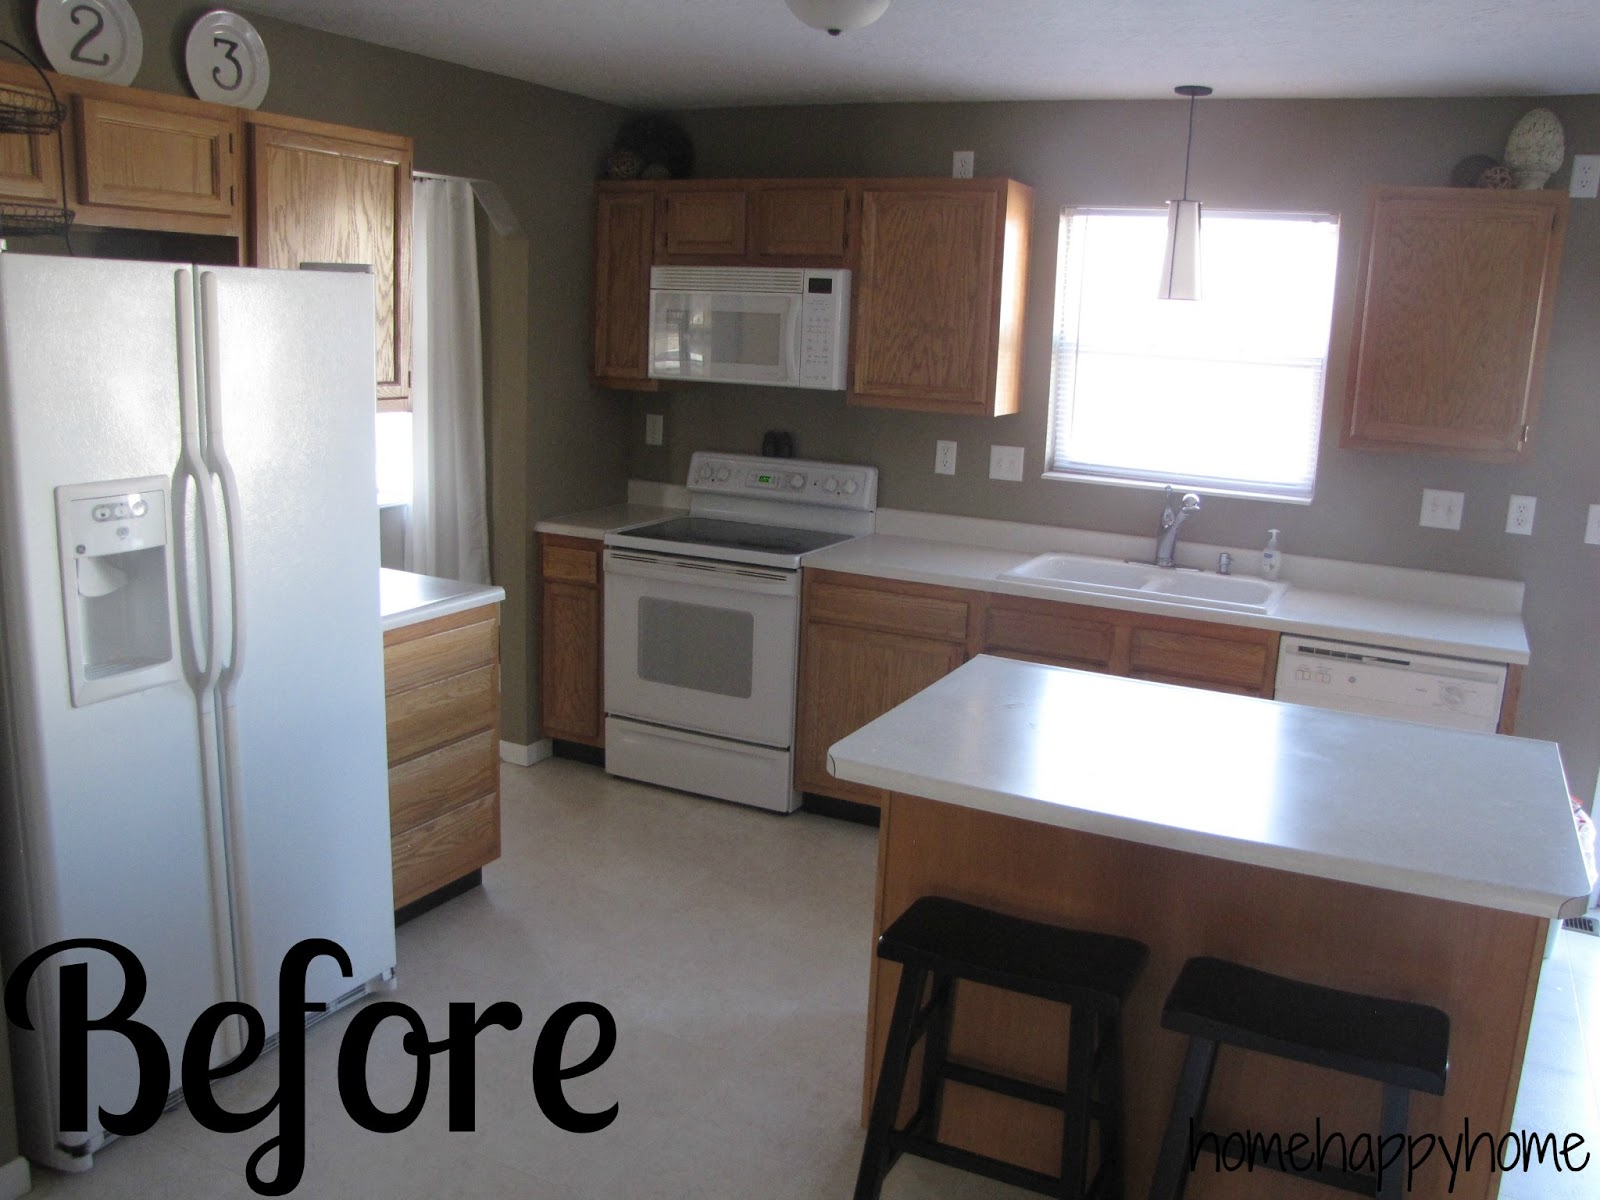 Simple Kitchen Remodel Home Happy Home Kitchen Remodel Progress